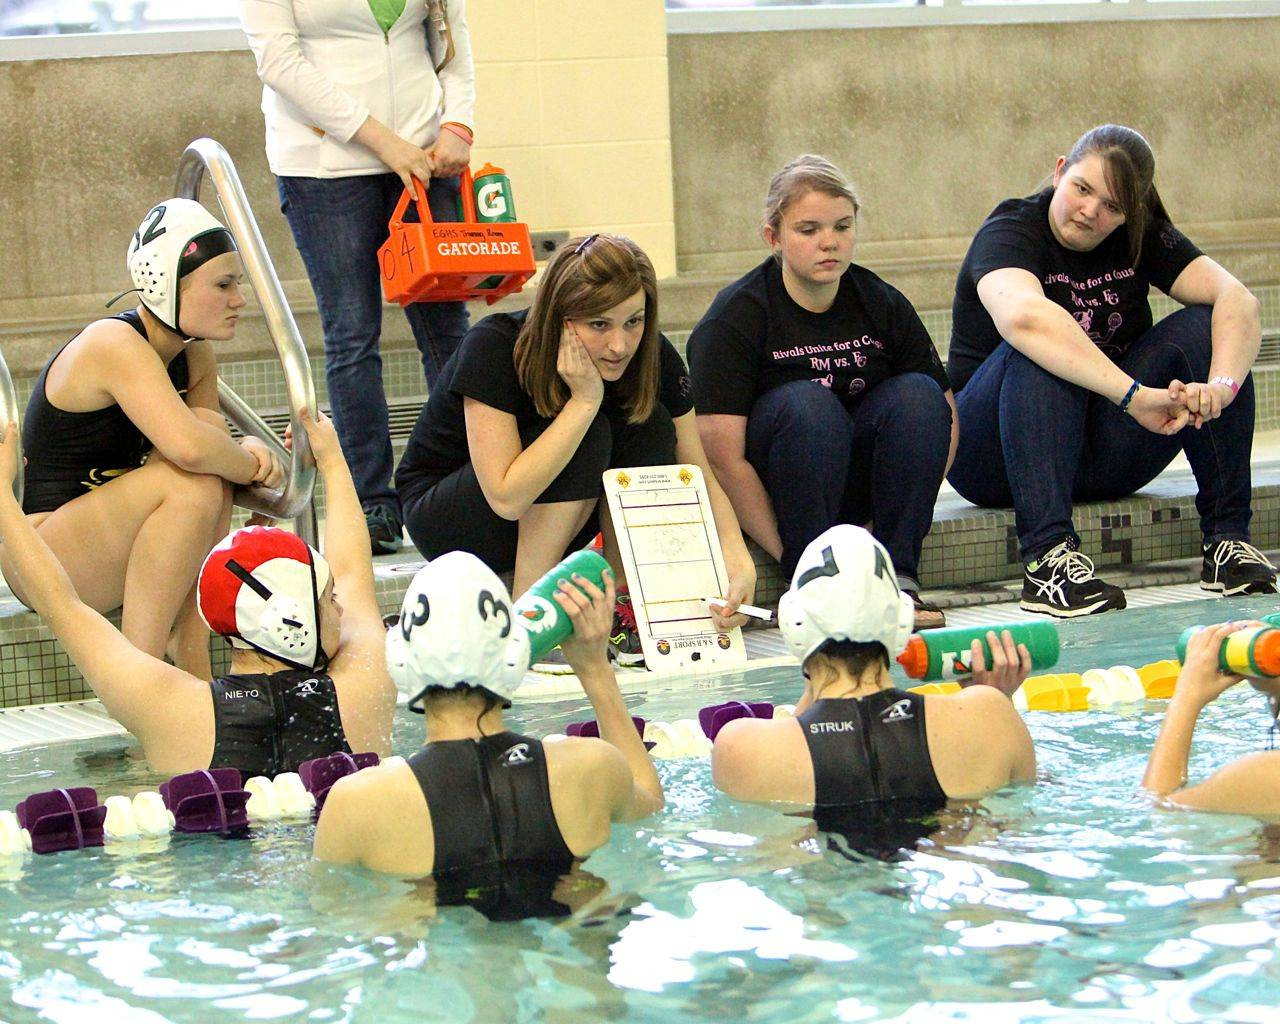 Alexa Rodheim, center, Elk Grove High School water polo coach, works with her team last week at a meet with Rolling Meadows. She's battling from an aggressive form of breast cancer and students are rallying to support her fight.